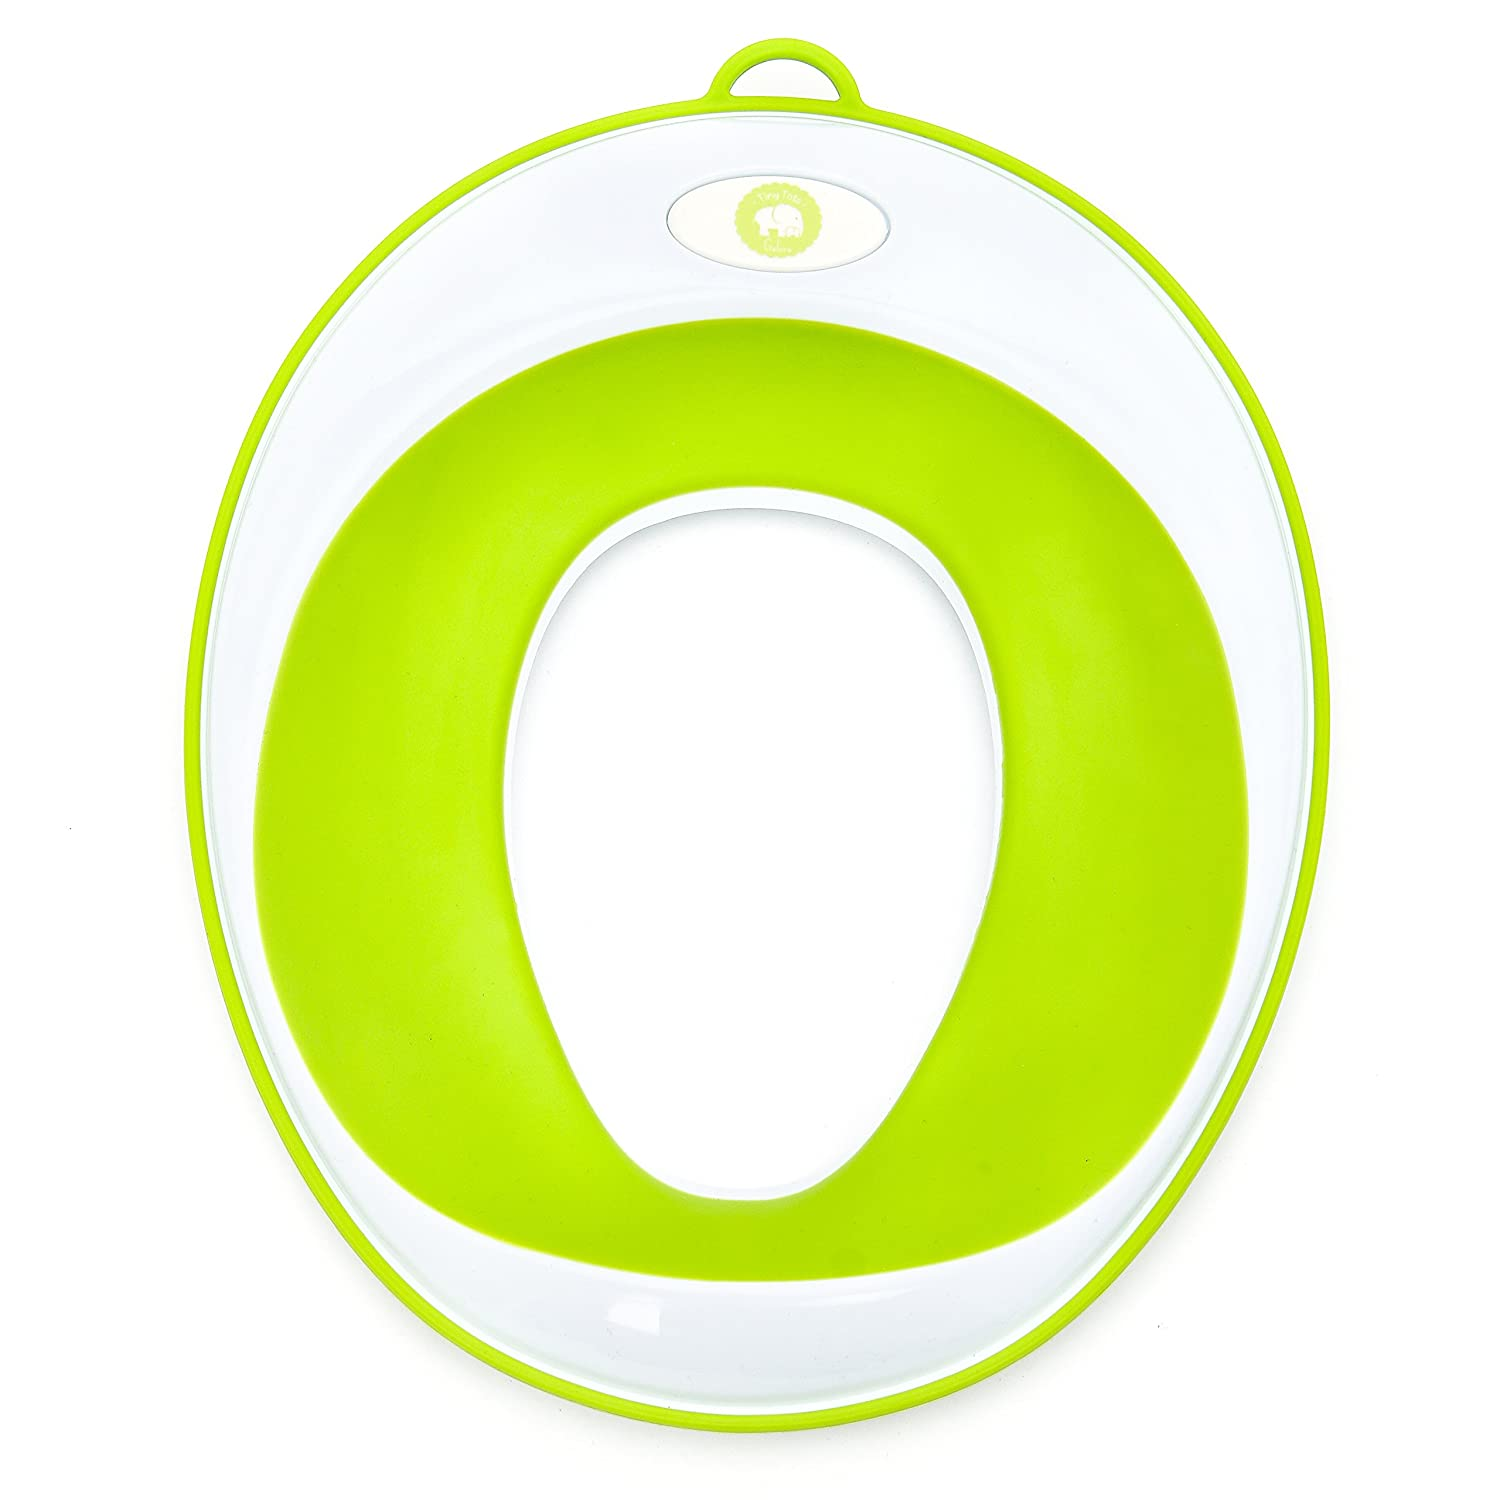 NEW Eco-Friendly Potty Training Seat with 100% No-Slip And Secure Ergonomic Design Fits 99% Of Adult Toilets